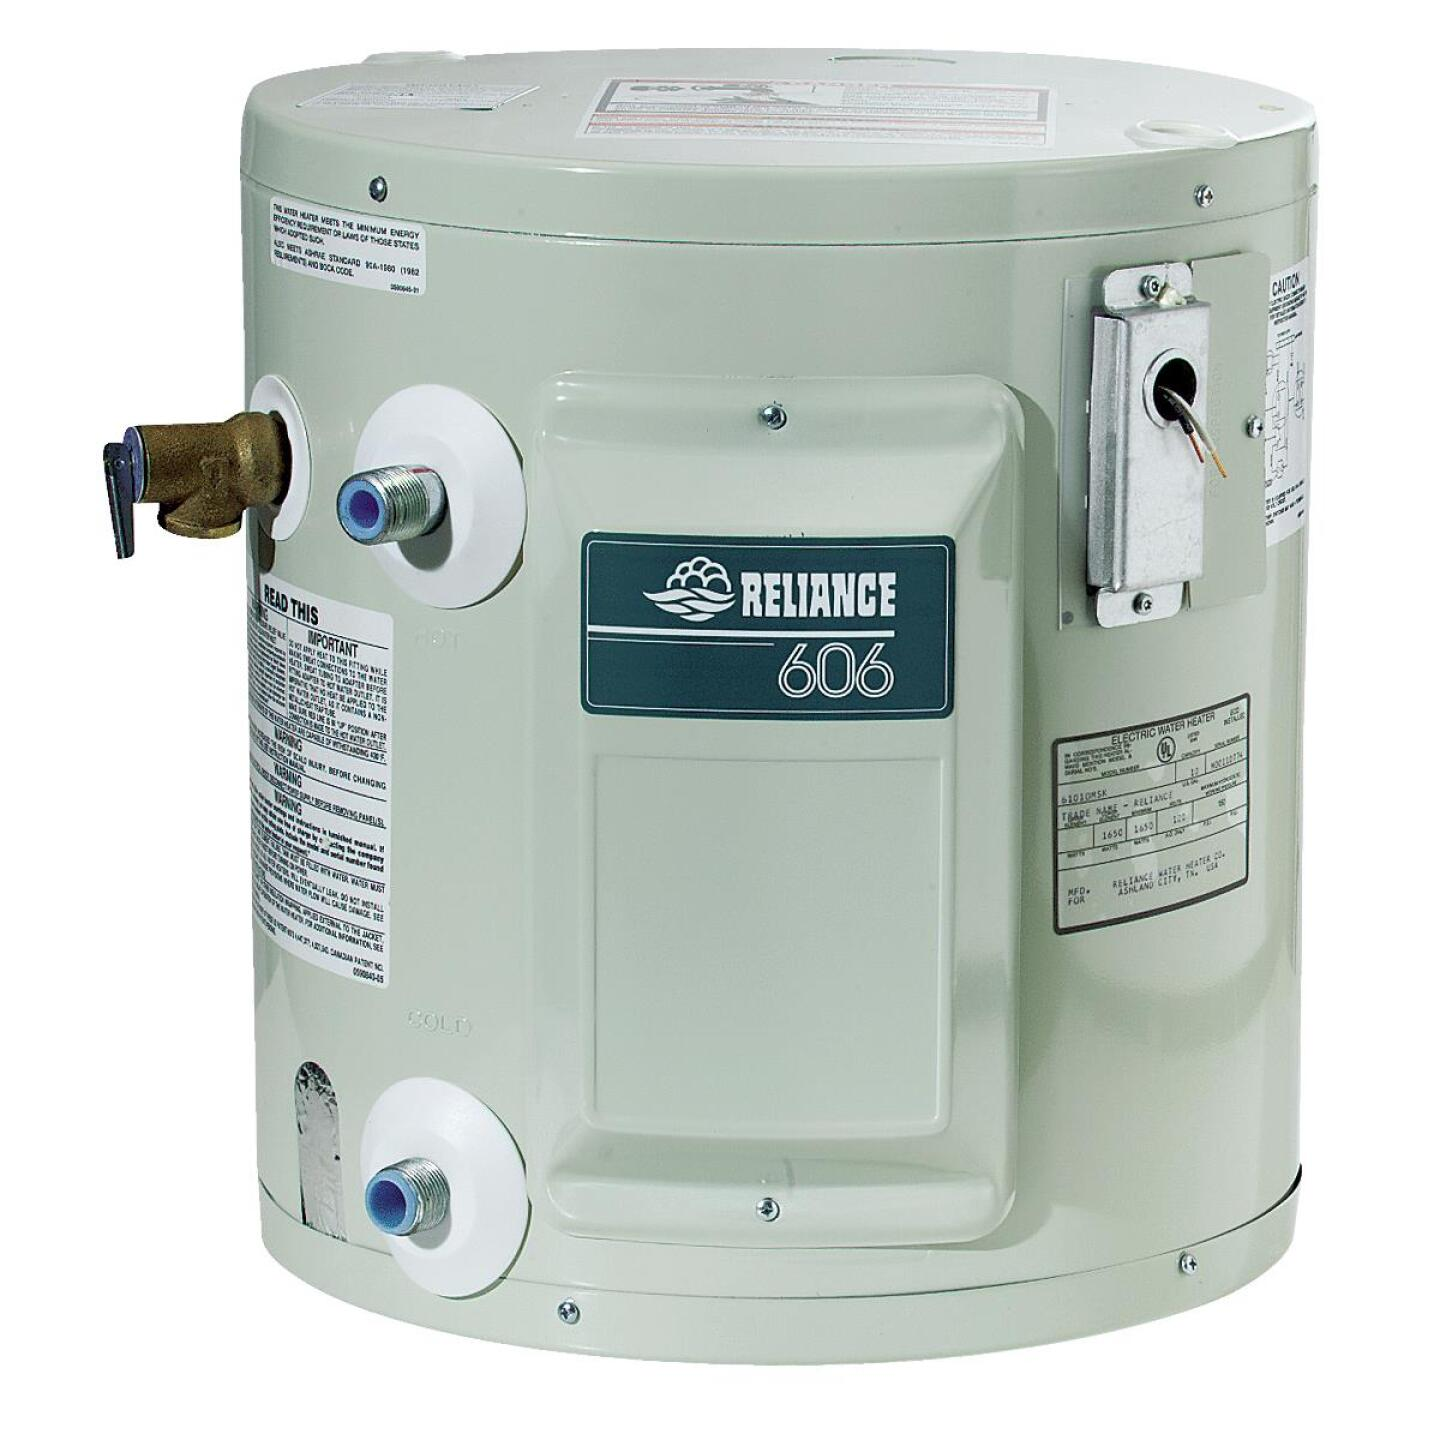 Reliance 10 Gal. Compact 6yr 1650W Element Electric Water Heater Image 1